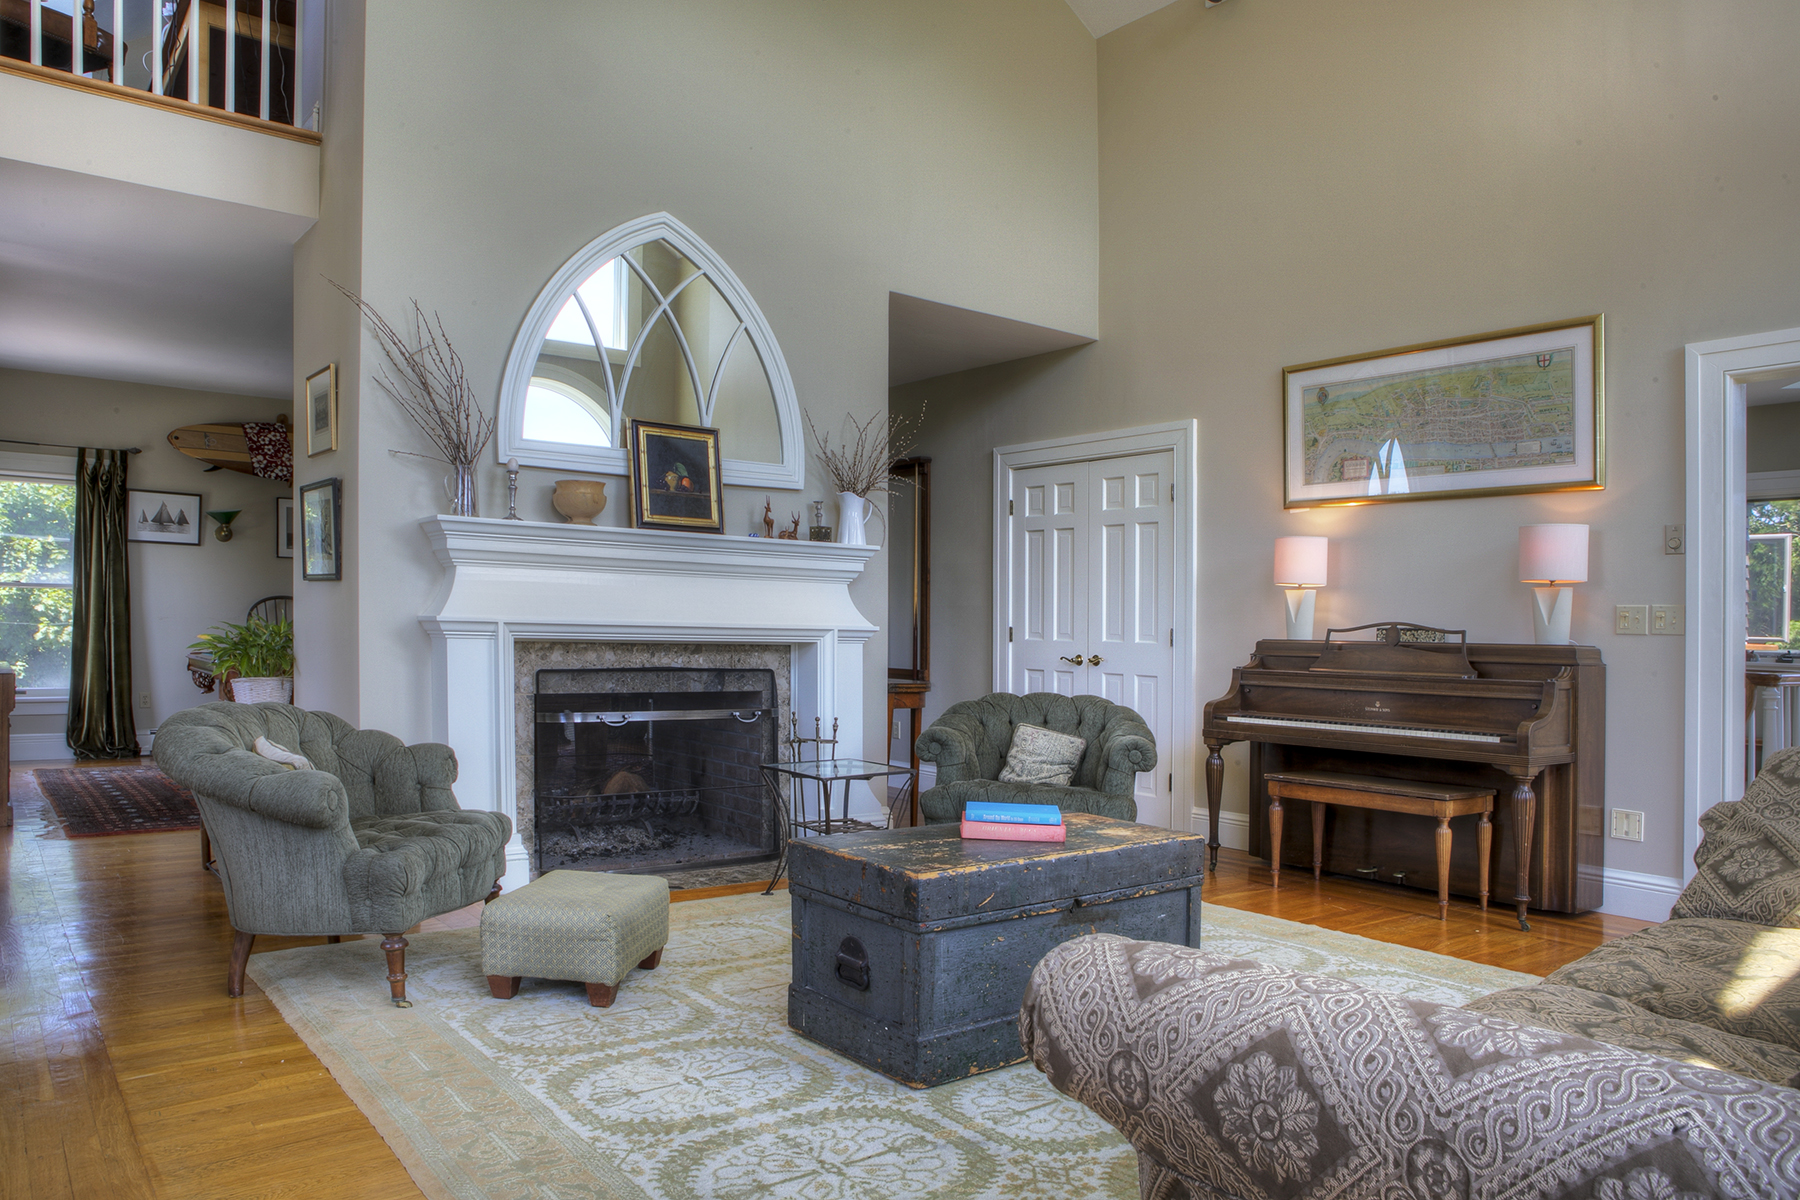 Additional photo for property listing at Shingle Style with Ocean Views 43 Ashurst Avenue Middletown, Rhode Island 02842 United States